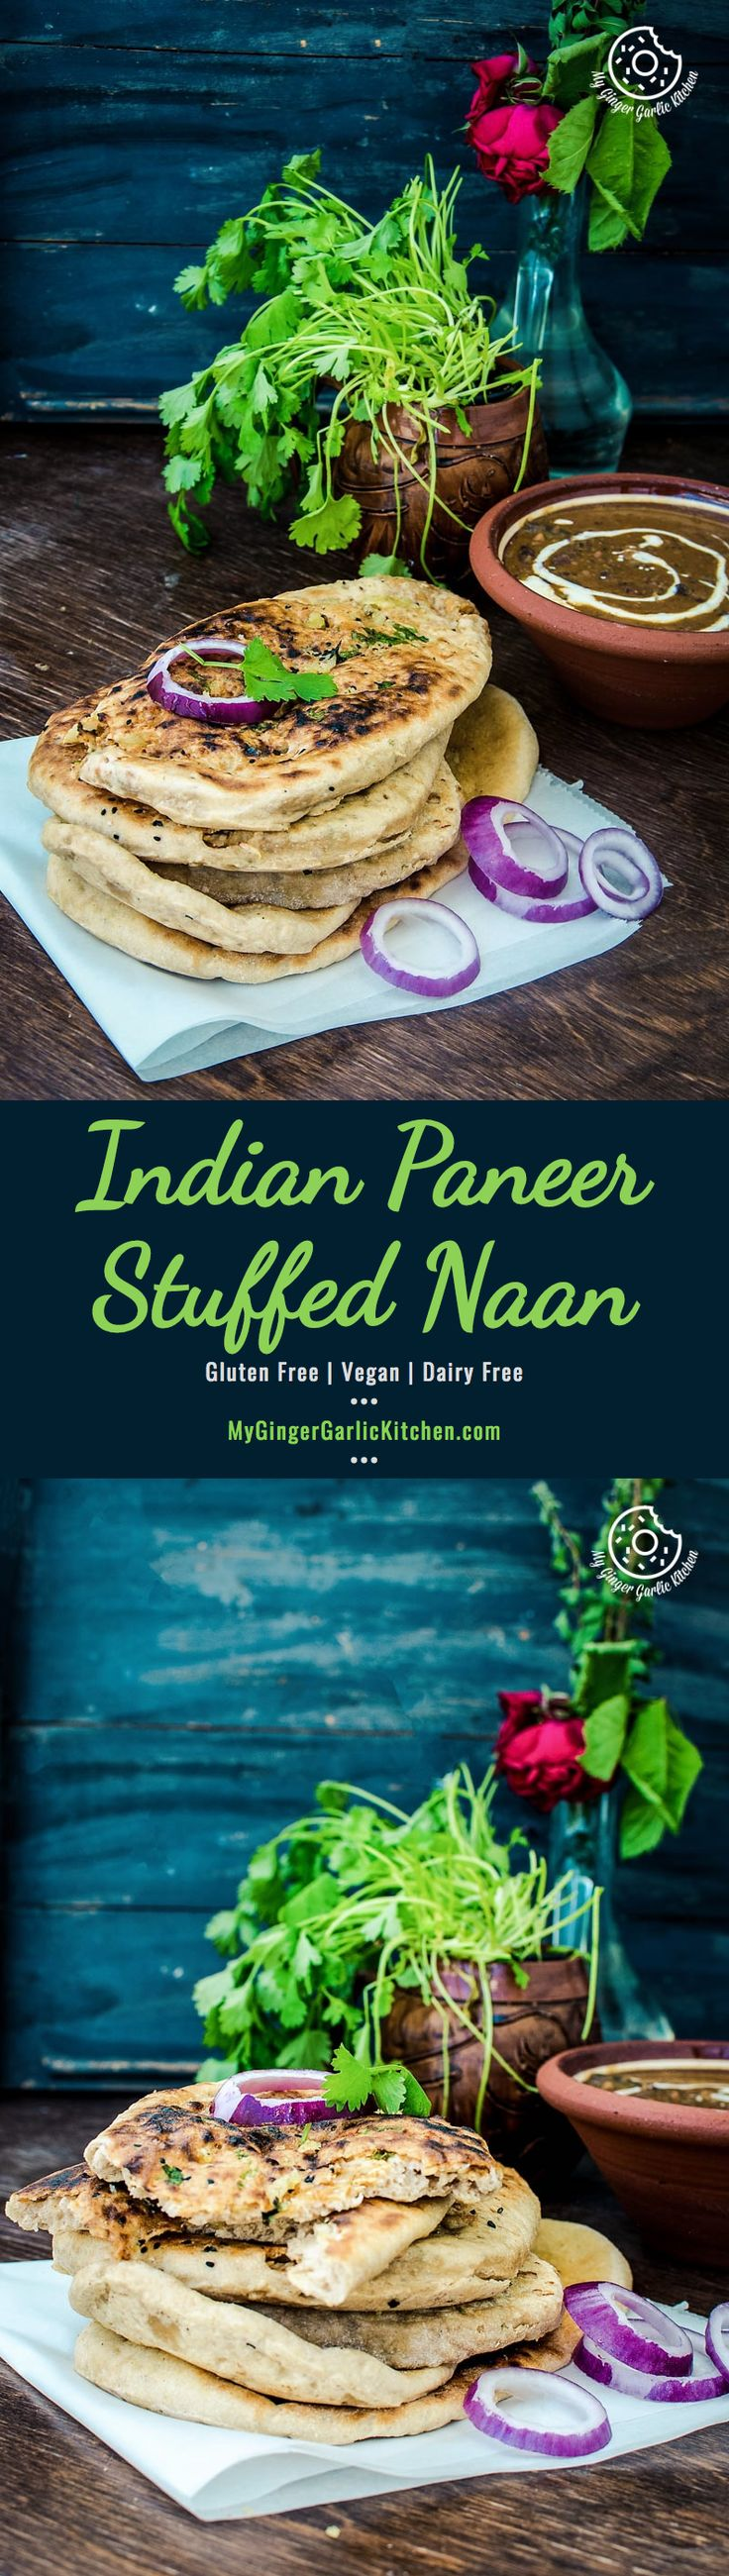 Indian Paneer Stuffed Naan —  this crispy Indian Naan is stuffed with a classic and delectable mixture of Indian paneer, onions and some spices. It can be served as breakfast and also as a main meal. From: https://www.mygingergarlickitchen #Paneer #Stuffednaan #naan #Indianflatbread #Punjabi #Naanontawa #Kulcha #Vegetarian